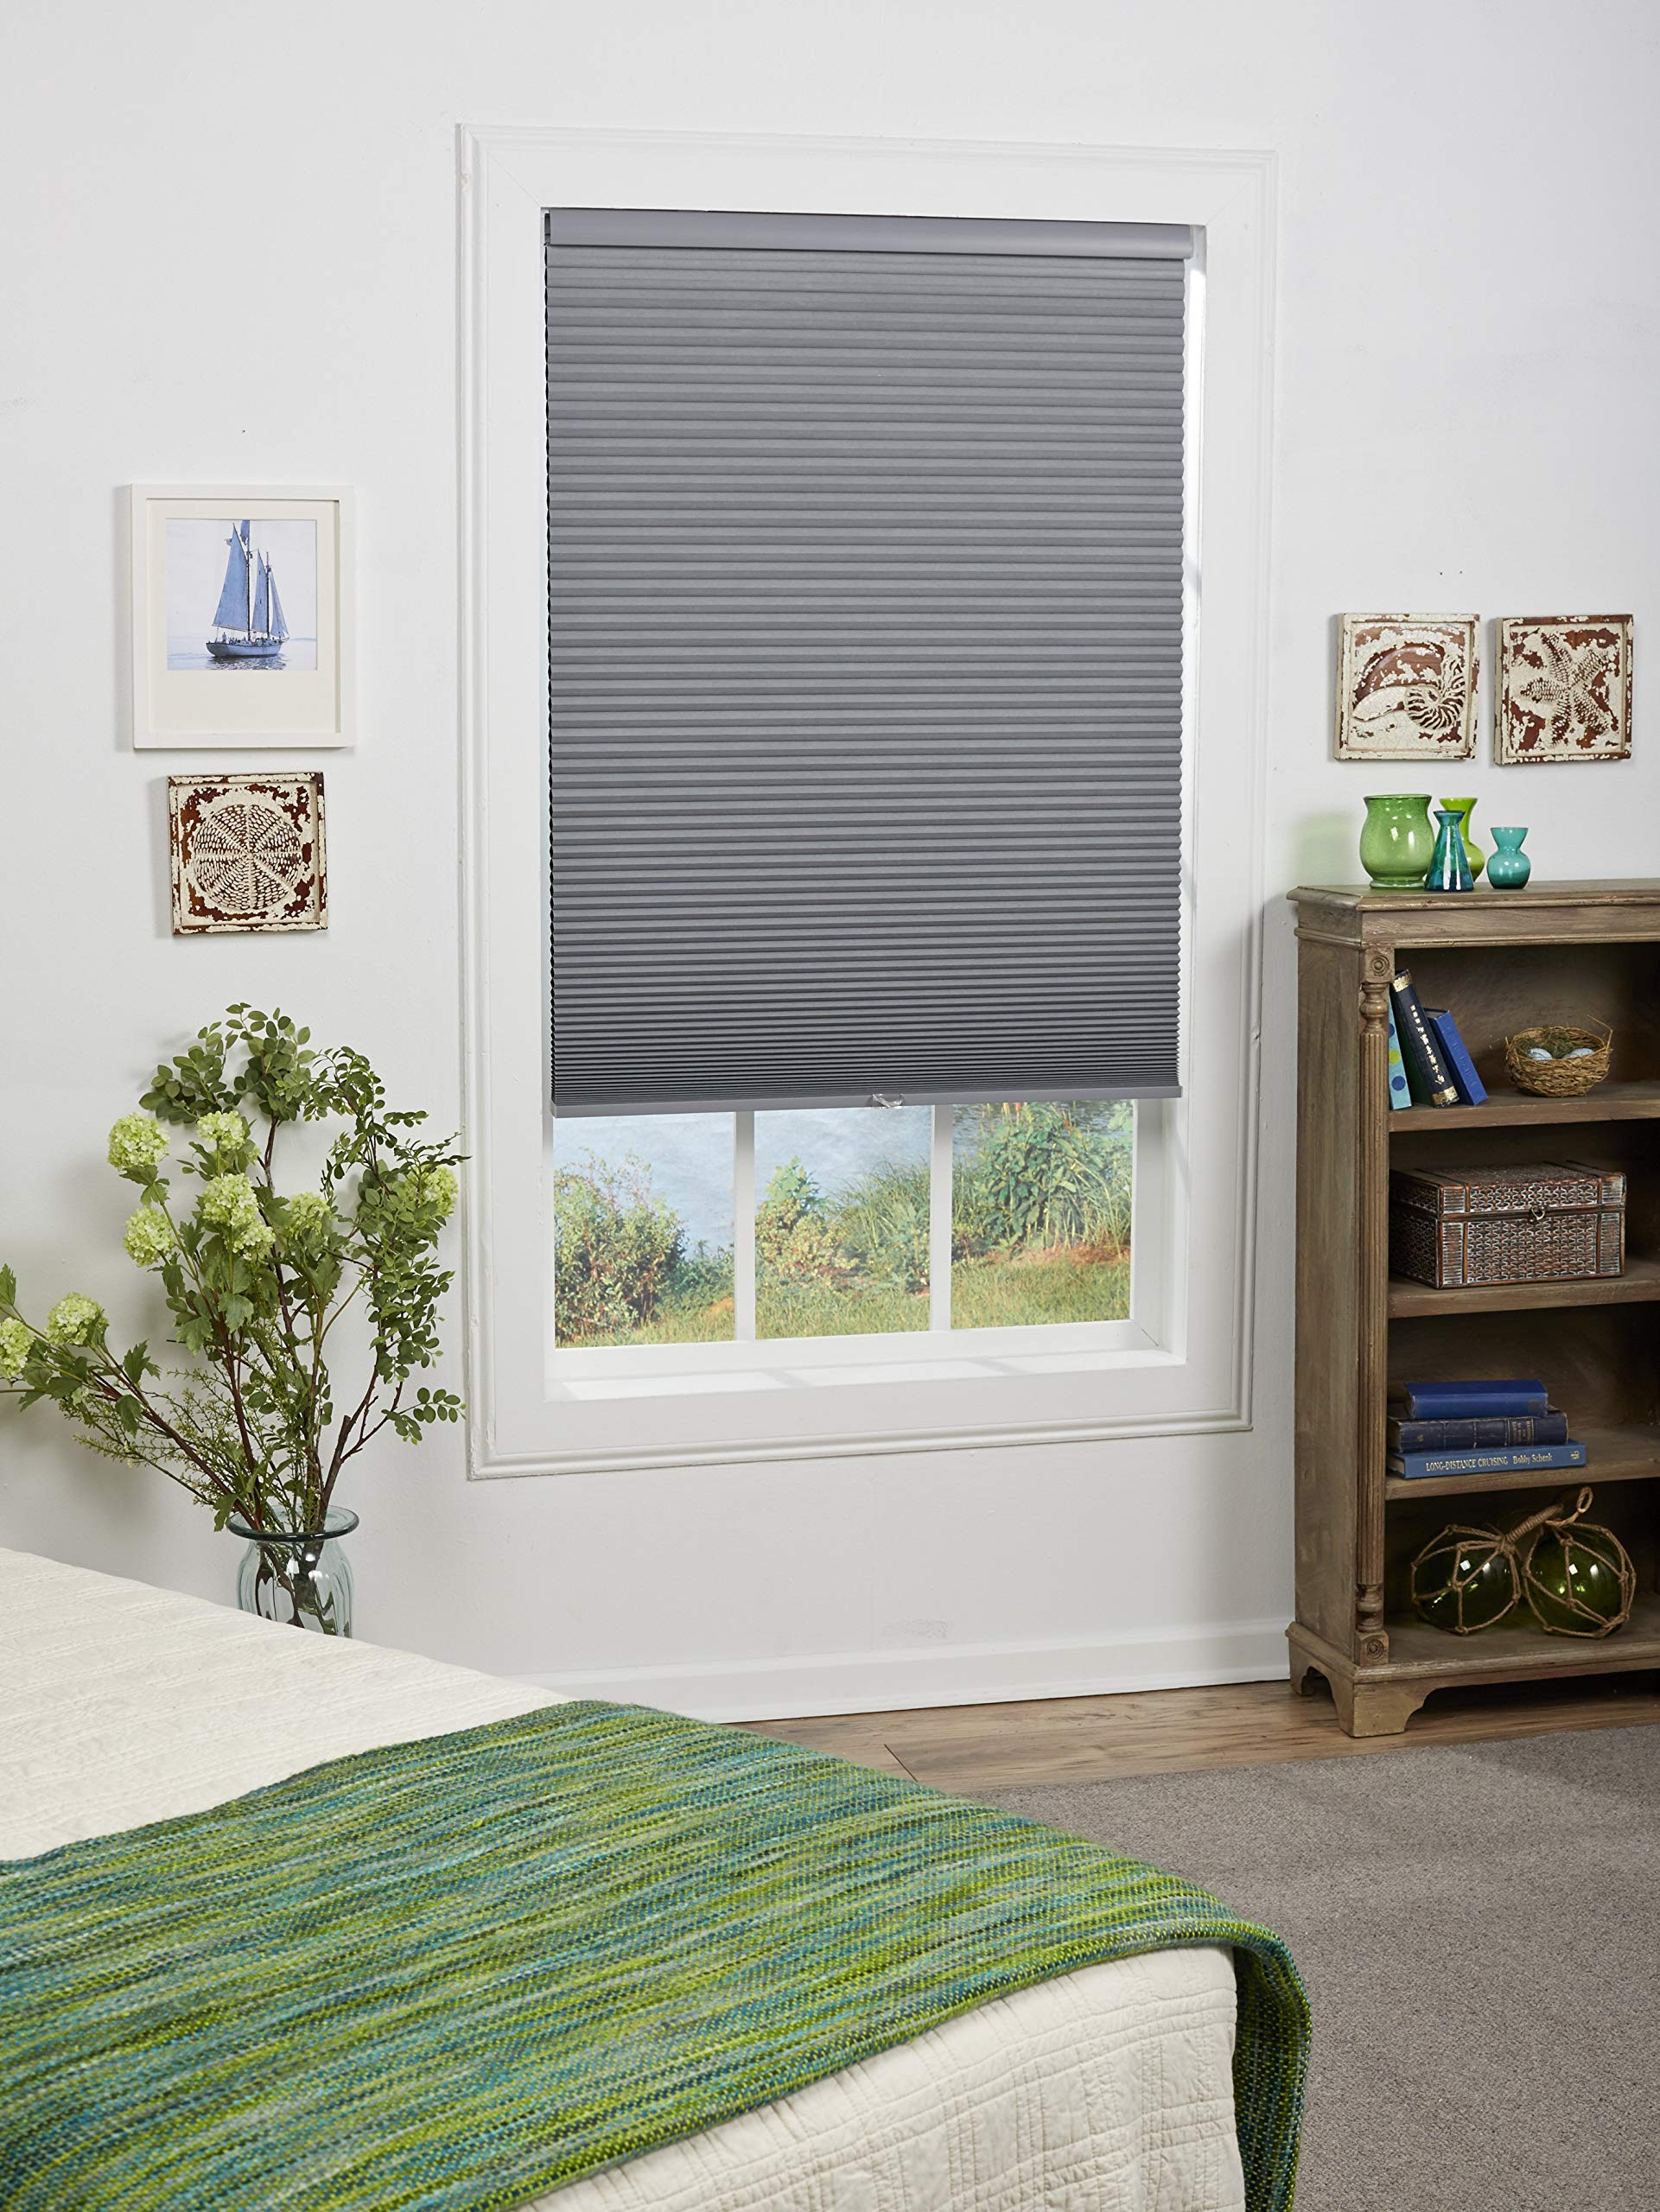 DEZ Furnishings QEGRWT470640 Cordless Blackout Cellular Shade, 47W x 64H Inches, Anchor Gray by DEZ Furnishings